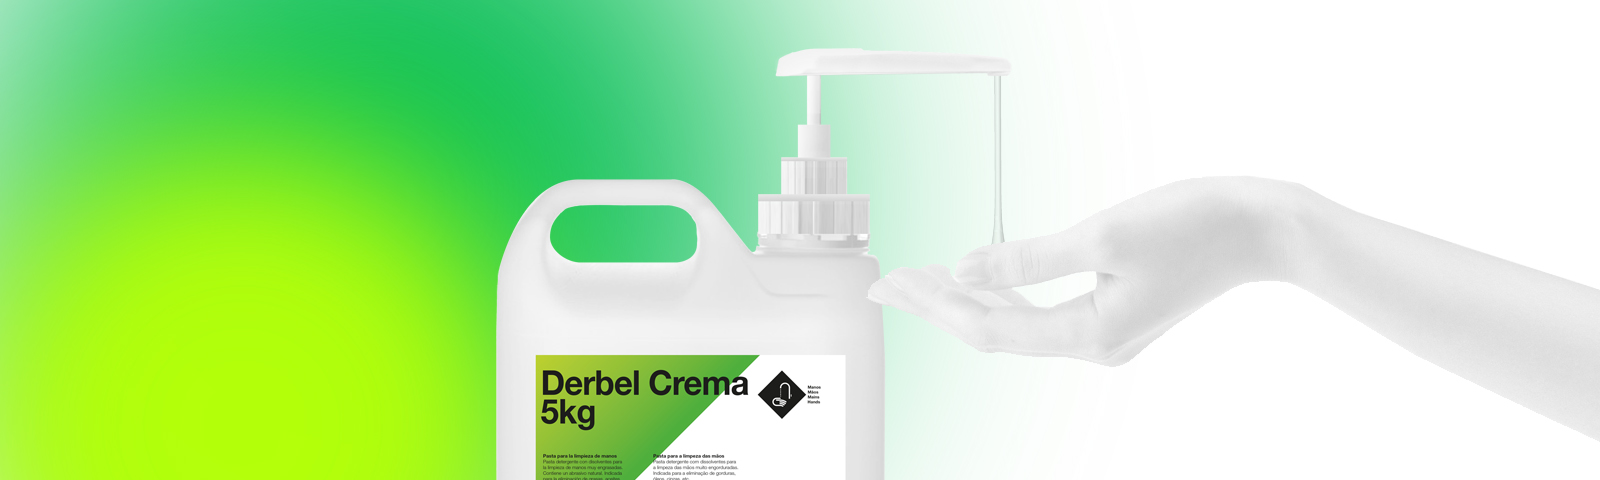 Derbel Crema con abrasivo natural